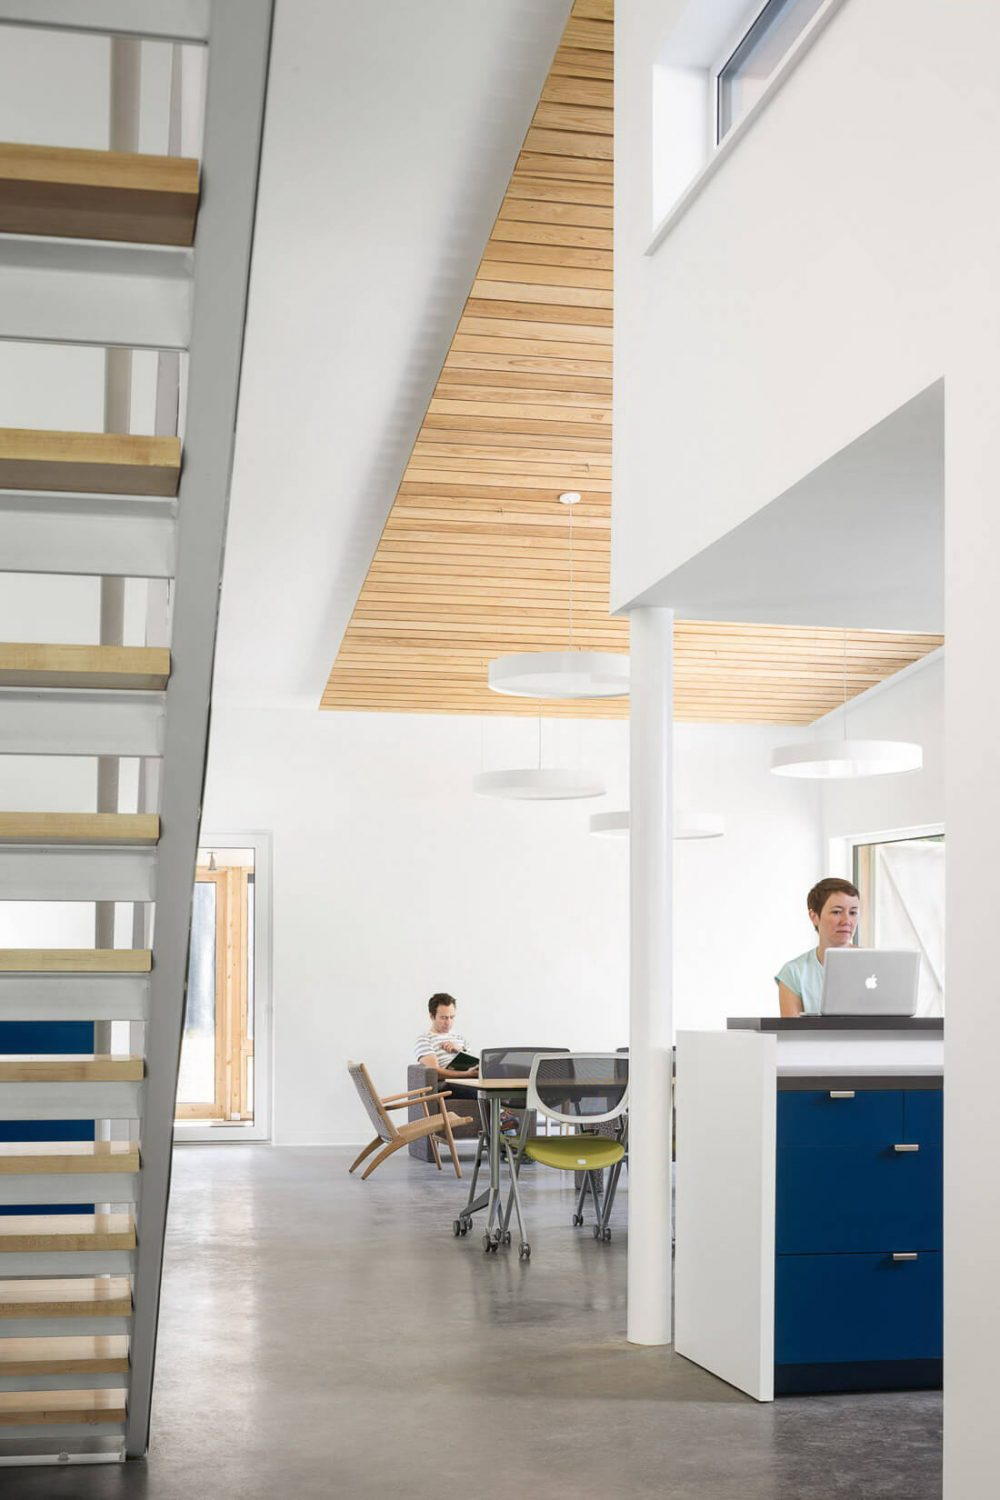 Warren Woods Passive House by GO Logic